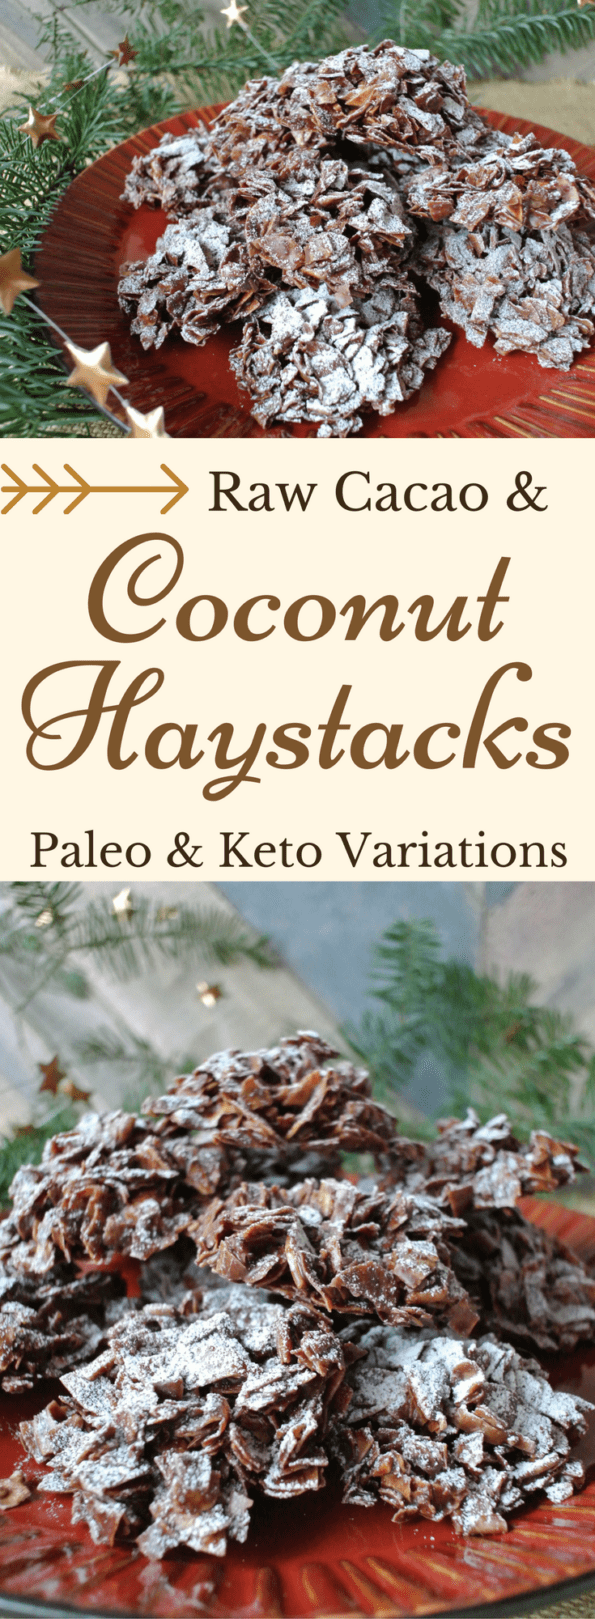 A collage of raw cacao and coconut haystacks with text overlay.